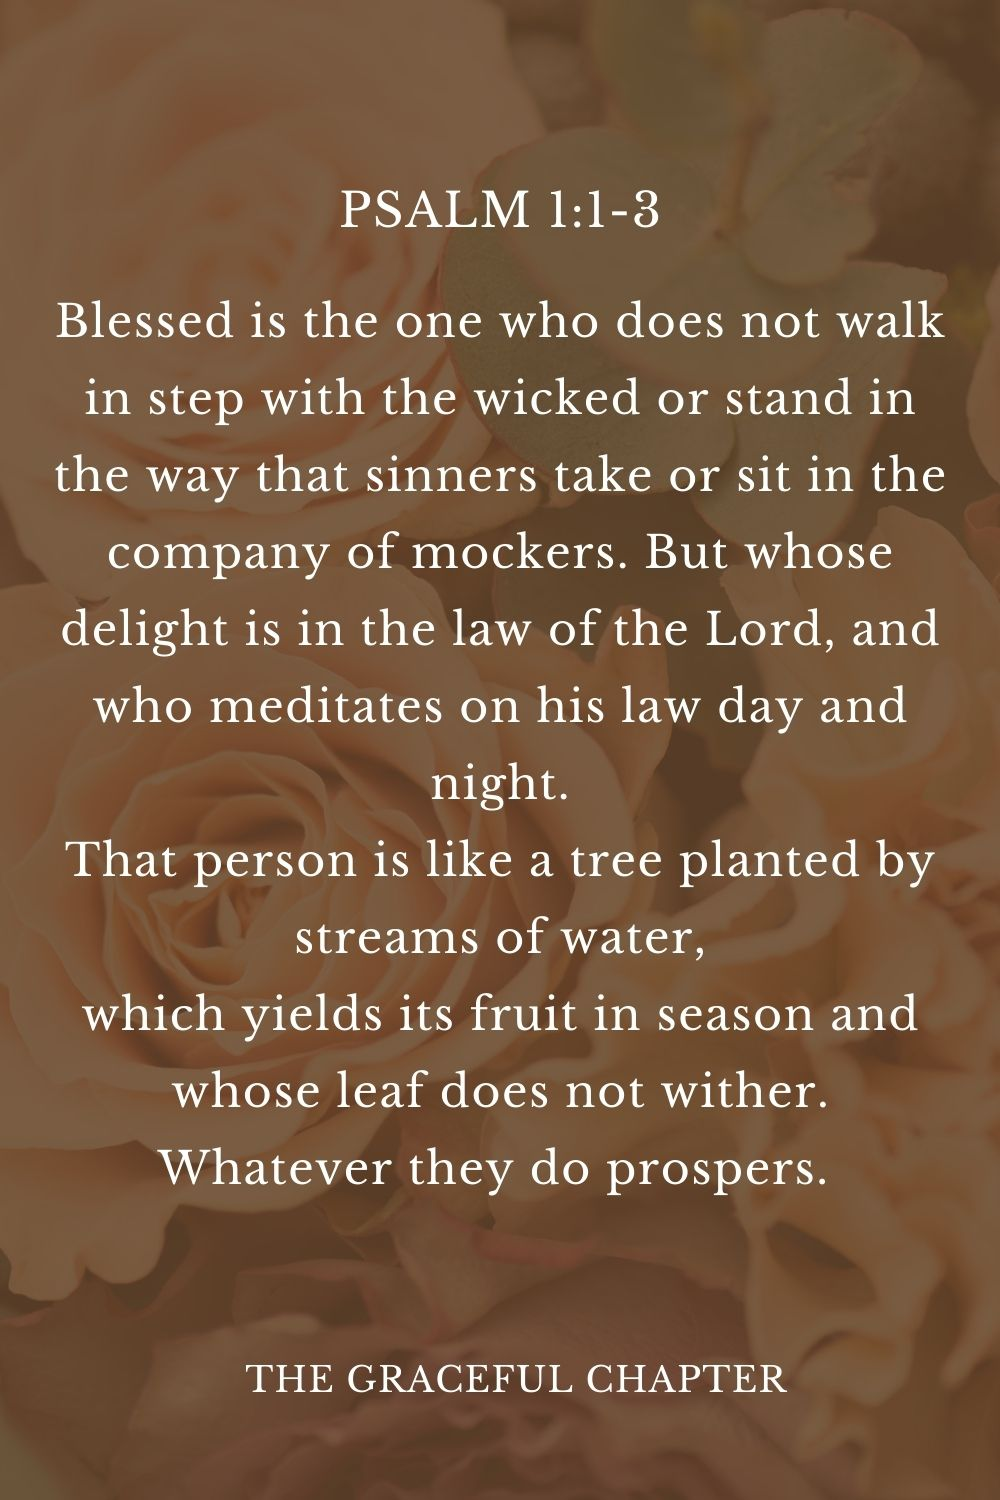 Blessed is the one who does not walk in step with the wicked or stand in the way that sinners take or sit in the company of mockers. But whose delight is in the law of the Lord, and who meditates on his law day and night. That person is like a tree planted by streams of water, which yields its fruit in season and whose leaf does not wither. Whatever they do prospers.  Psalm 1:1-3